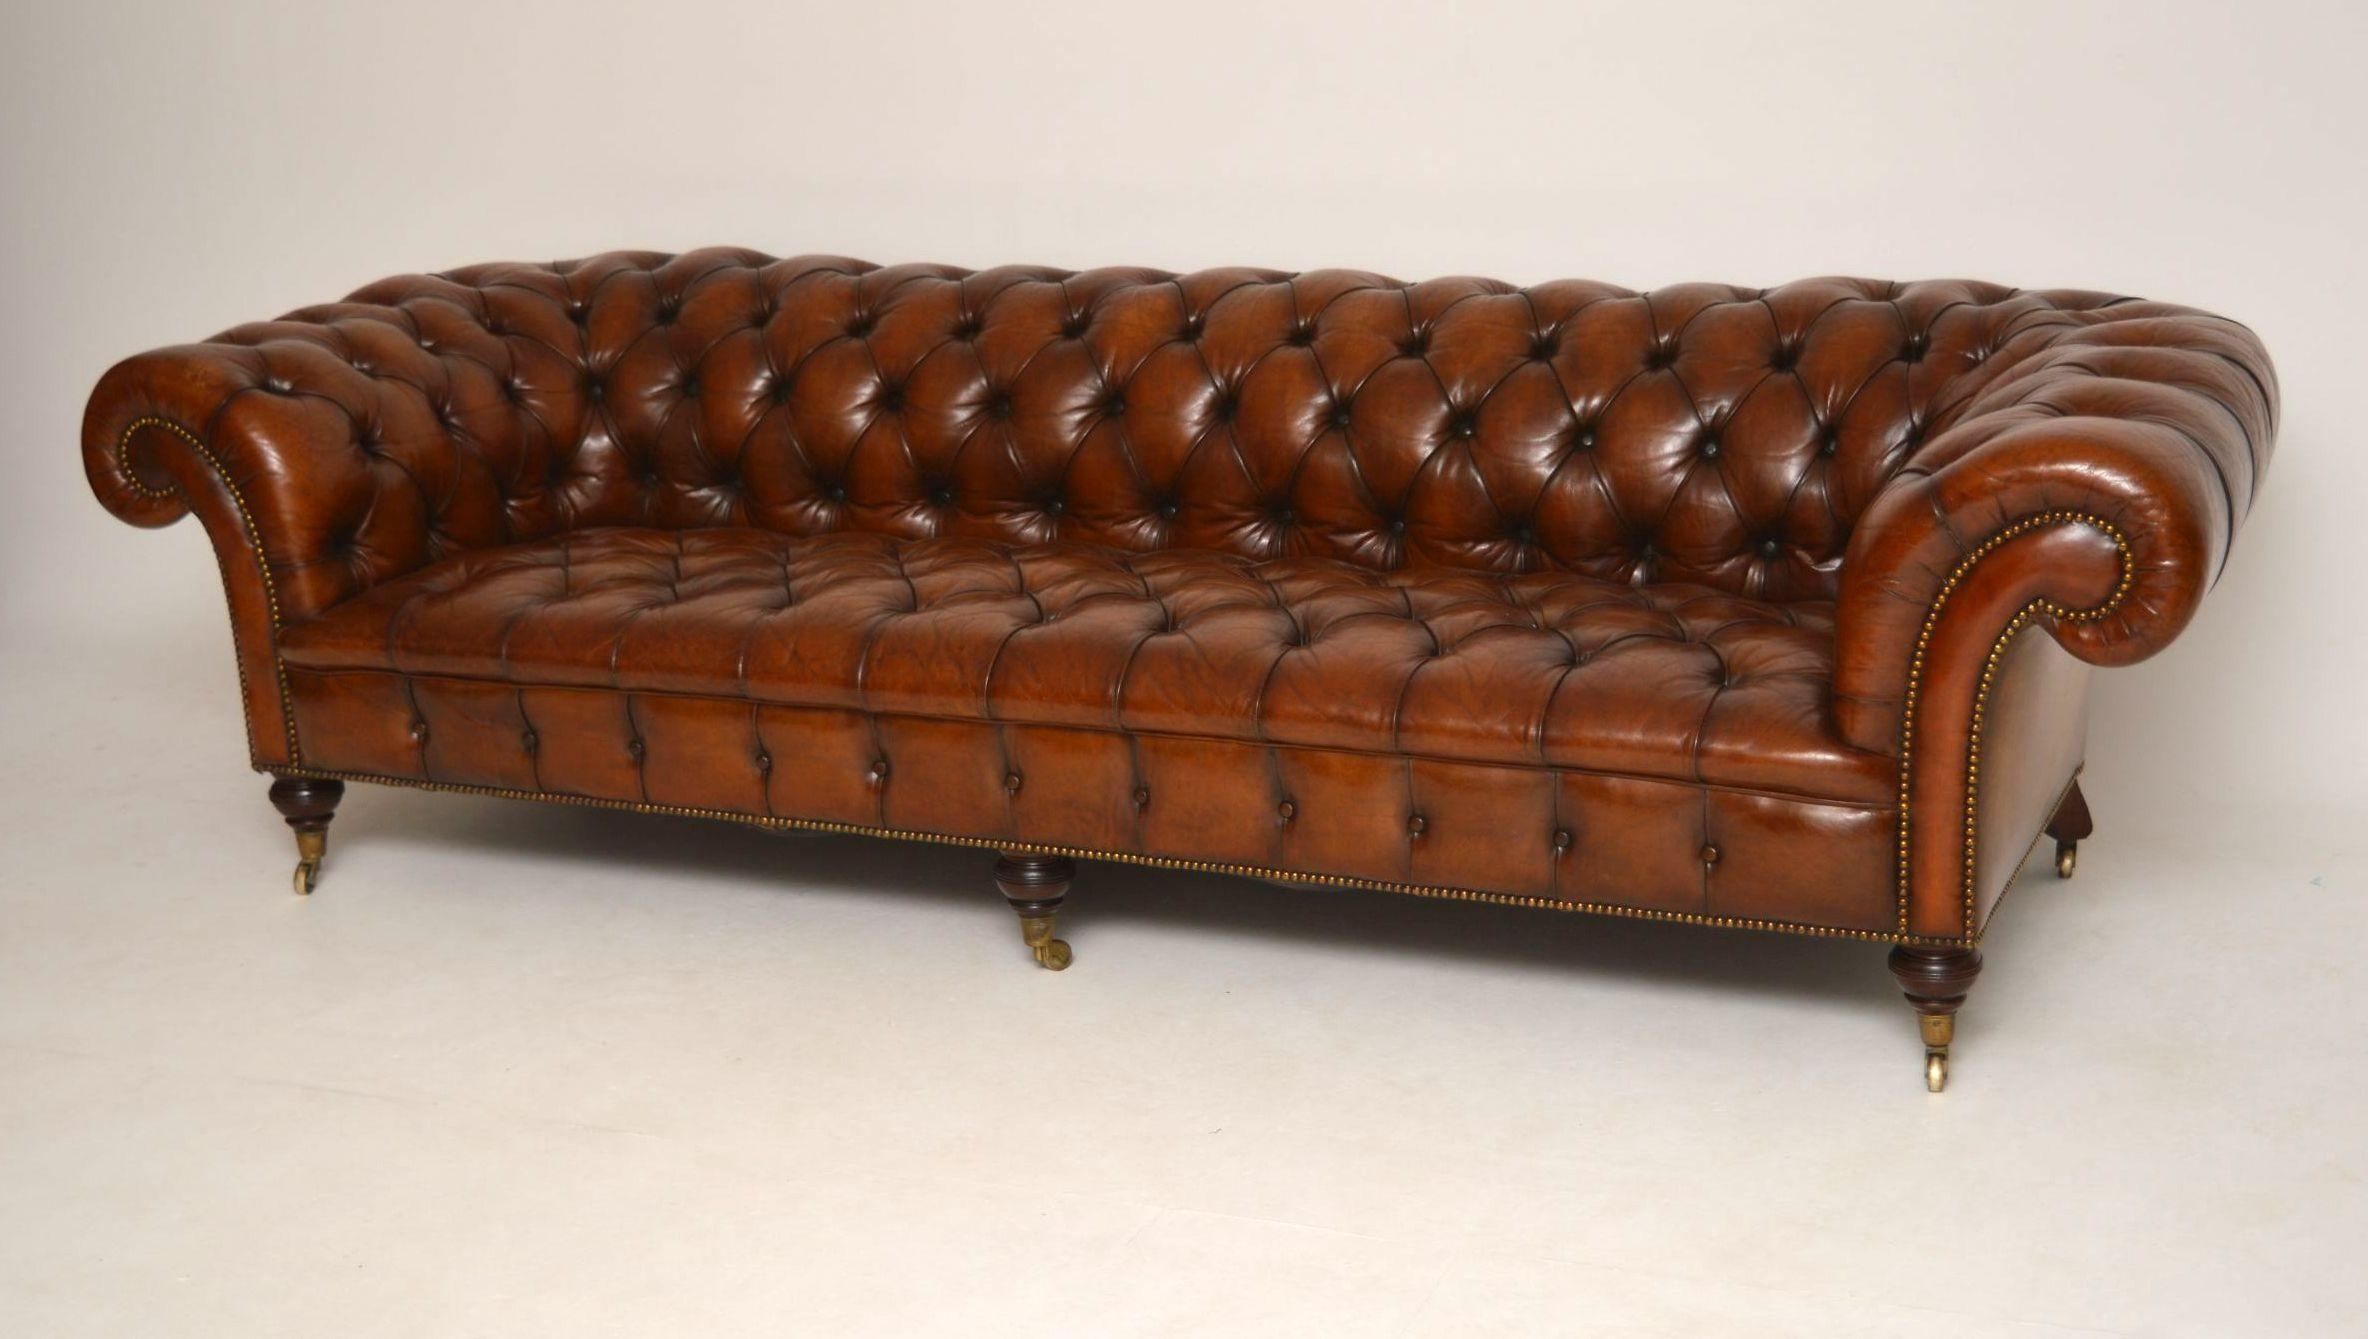 Storage Antique Chesterfield Sofas 24 With Antique Chesterfield Inside Victorian Leather Sofas (View 5 of 20)